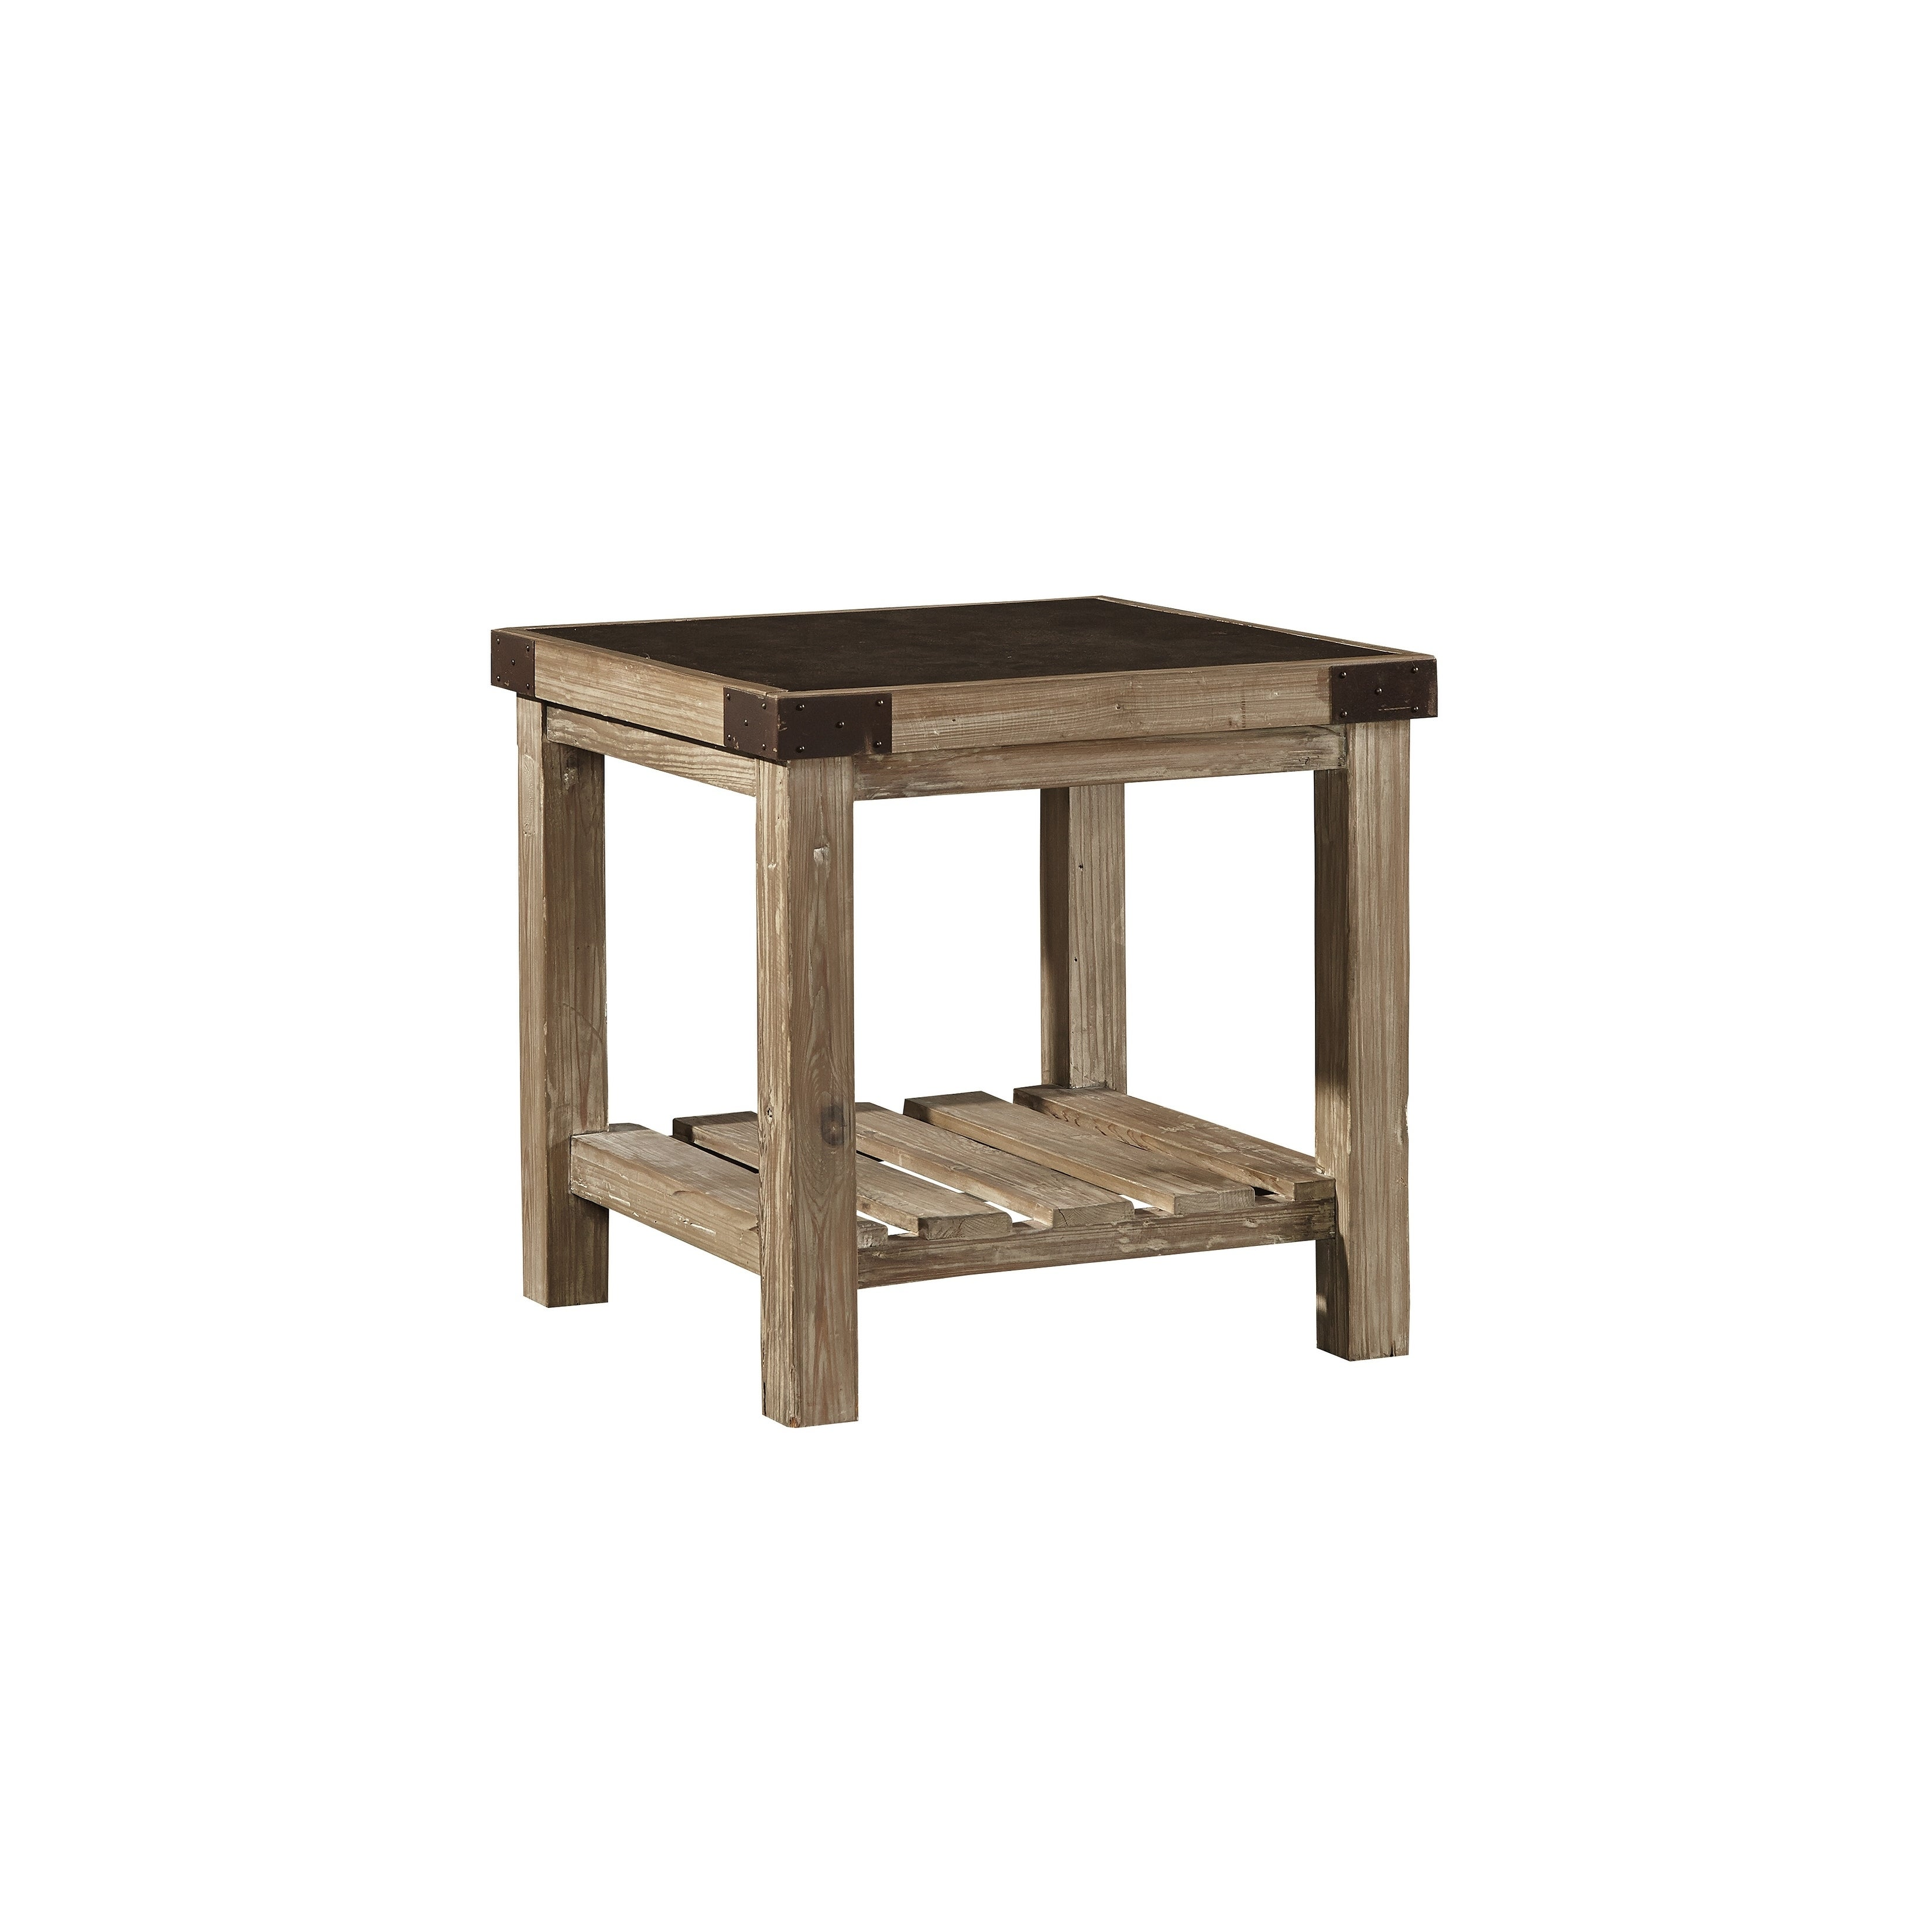 Shop anatolios wood side table with bluestone top free shipping today overstock com 17524183